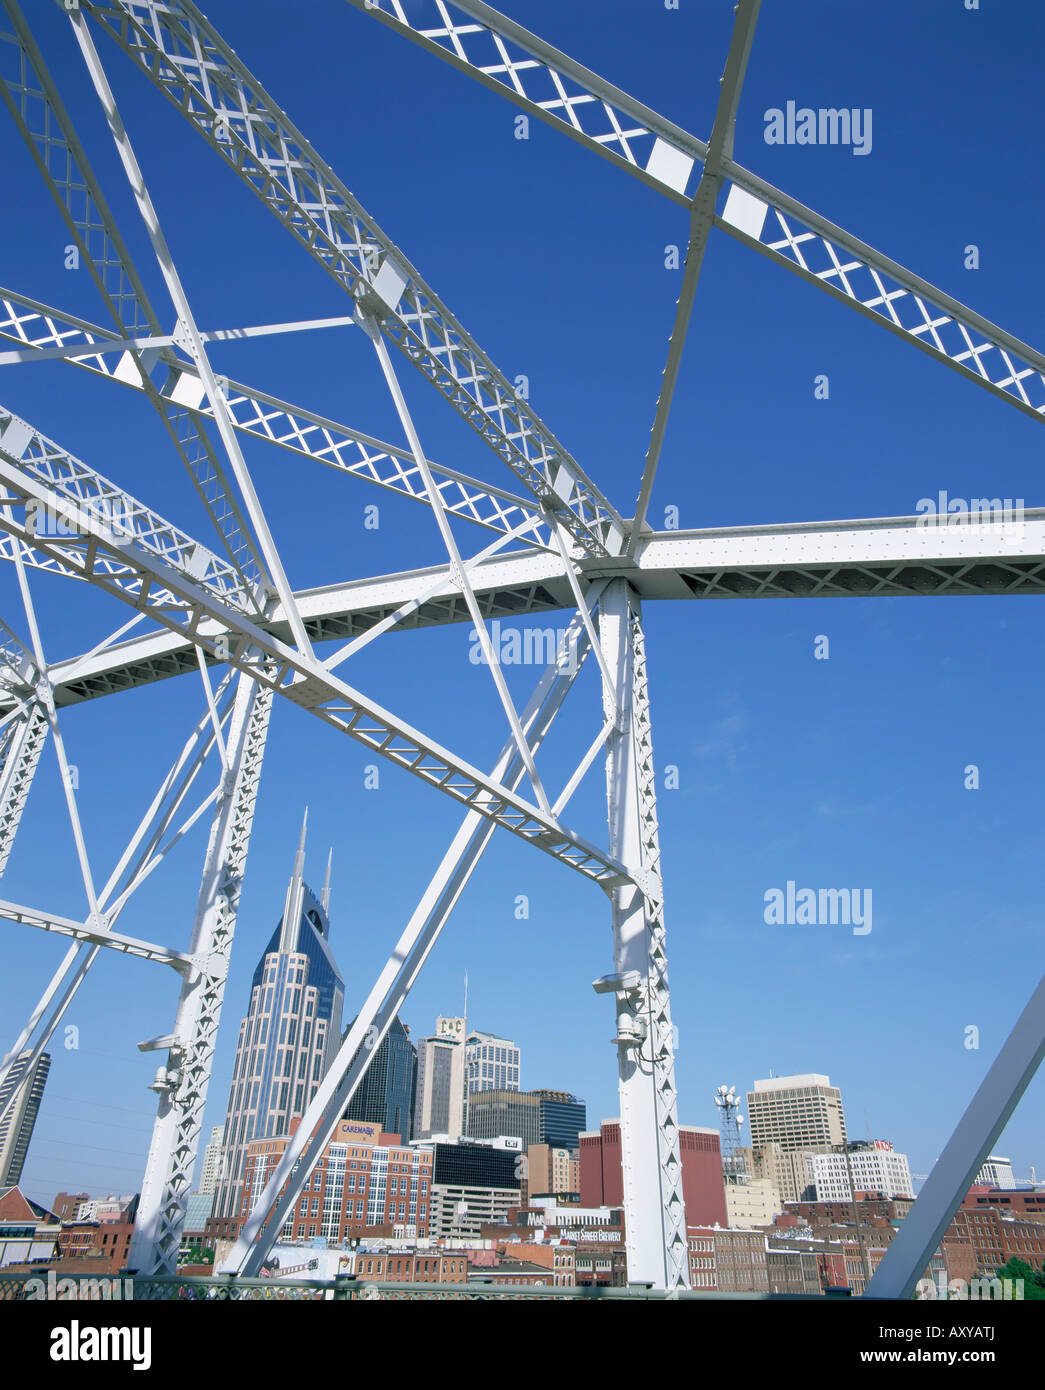 City skyline and new pedestrian bridge, Nashville, Tennessee, United States of America, North America - Stock Image